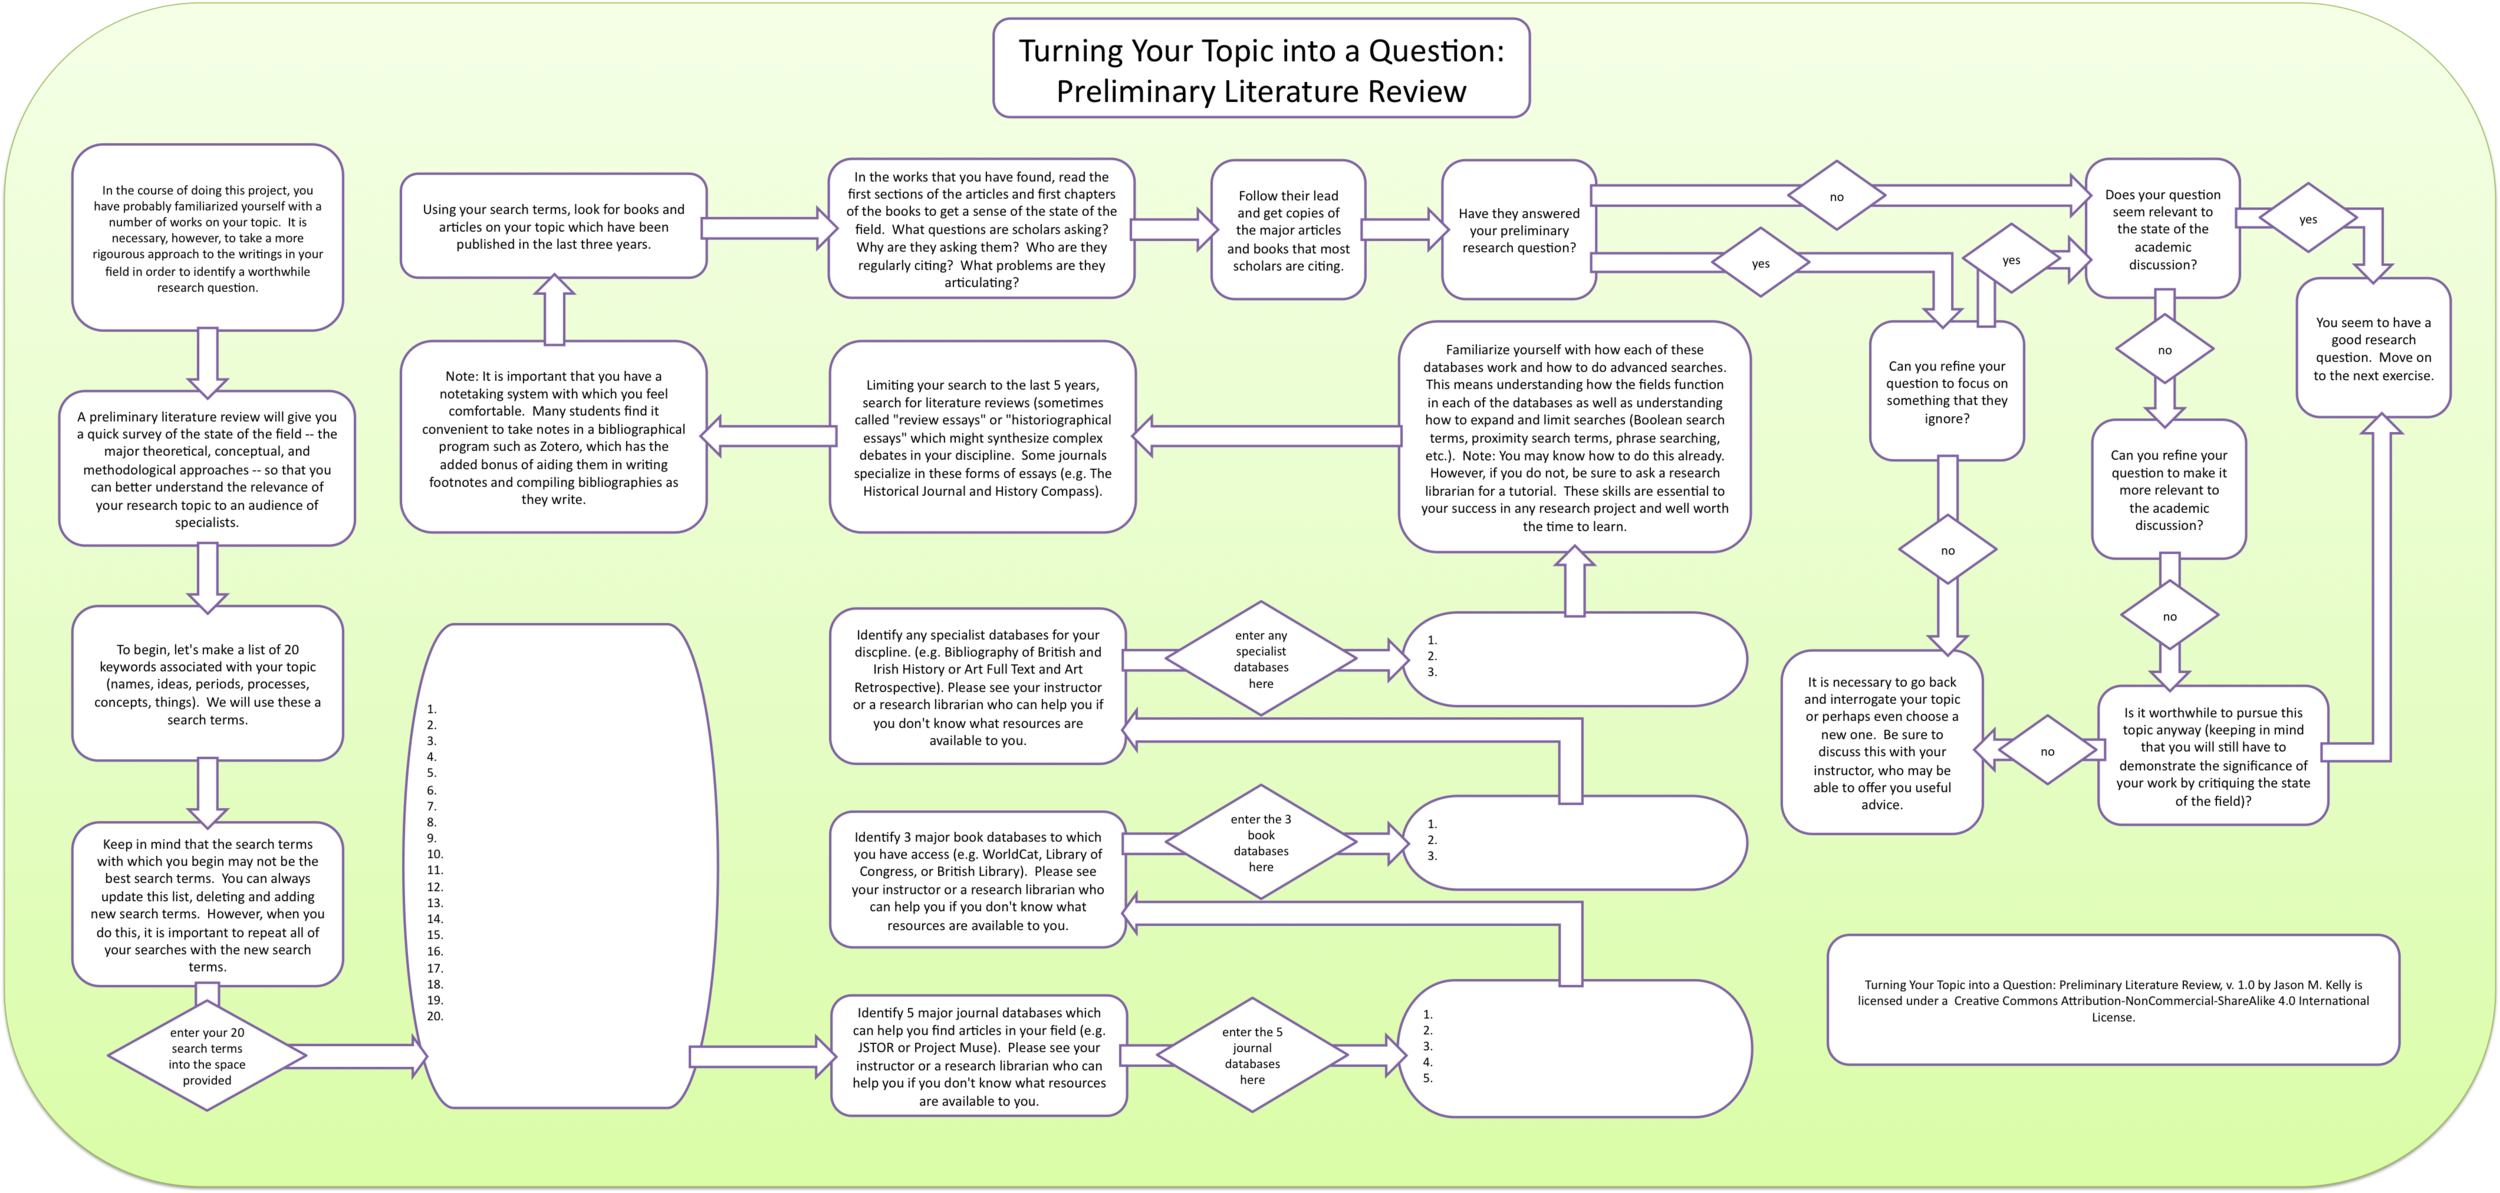 Turning Your Topic into a Question: Preliminary Literature Review, v. 1.0 by Jason M. Kelly is licensed under a Creative Commons Attribution-NonCommercial-ShareAlike 4.0 International License.